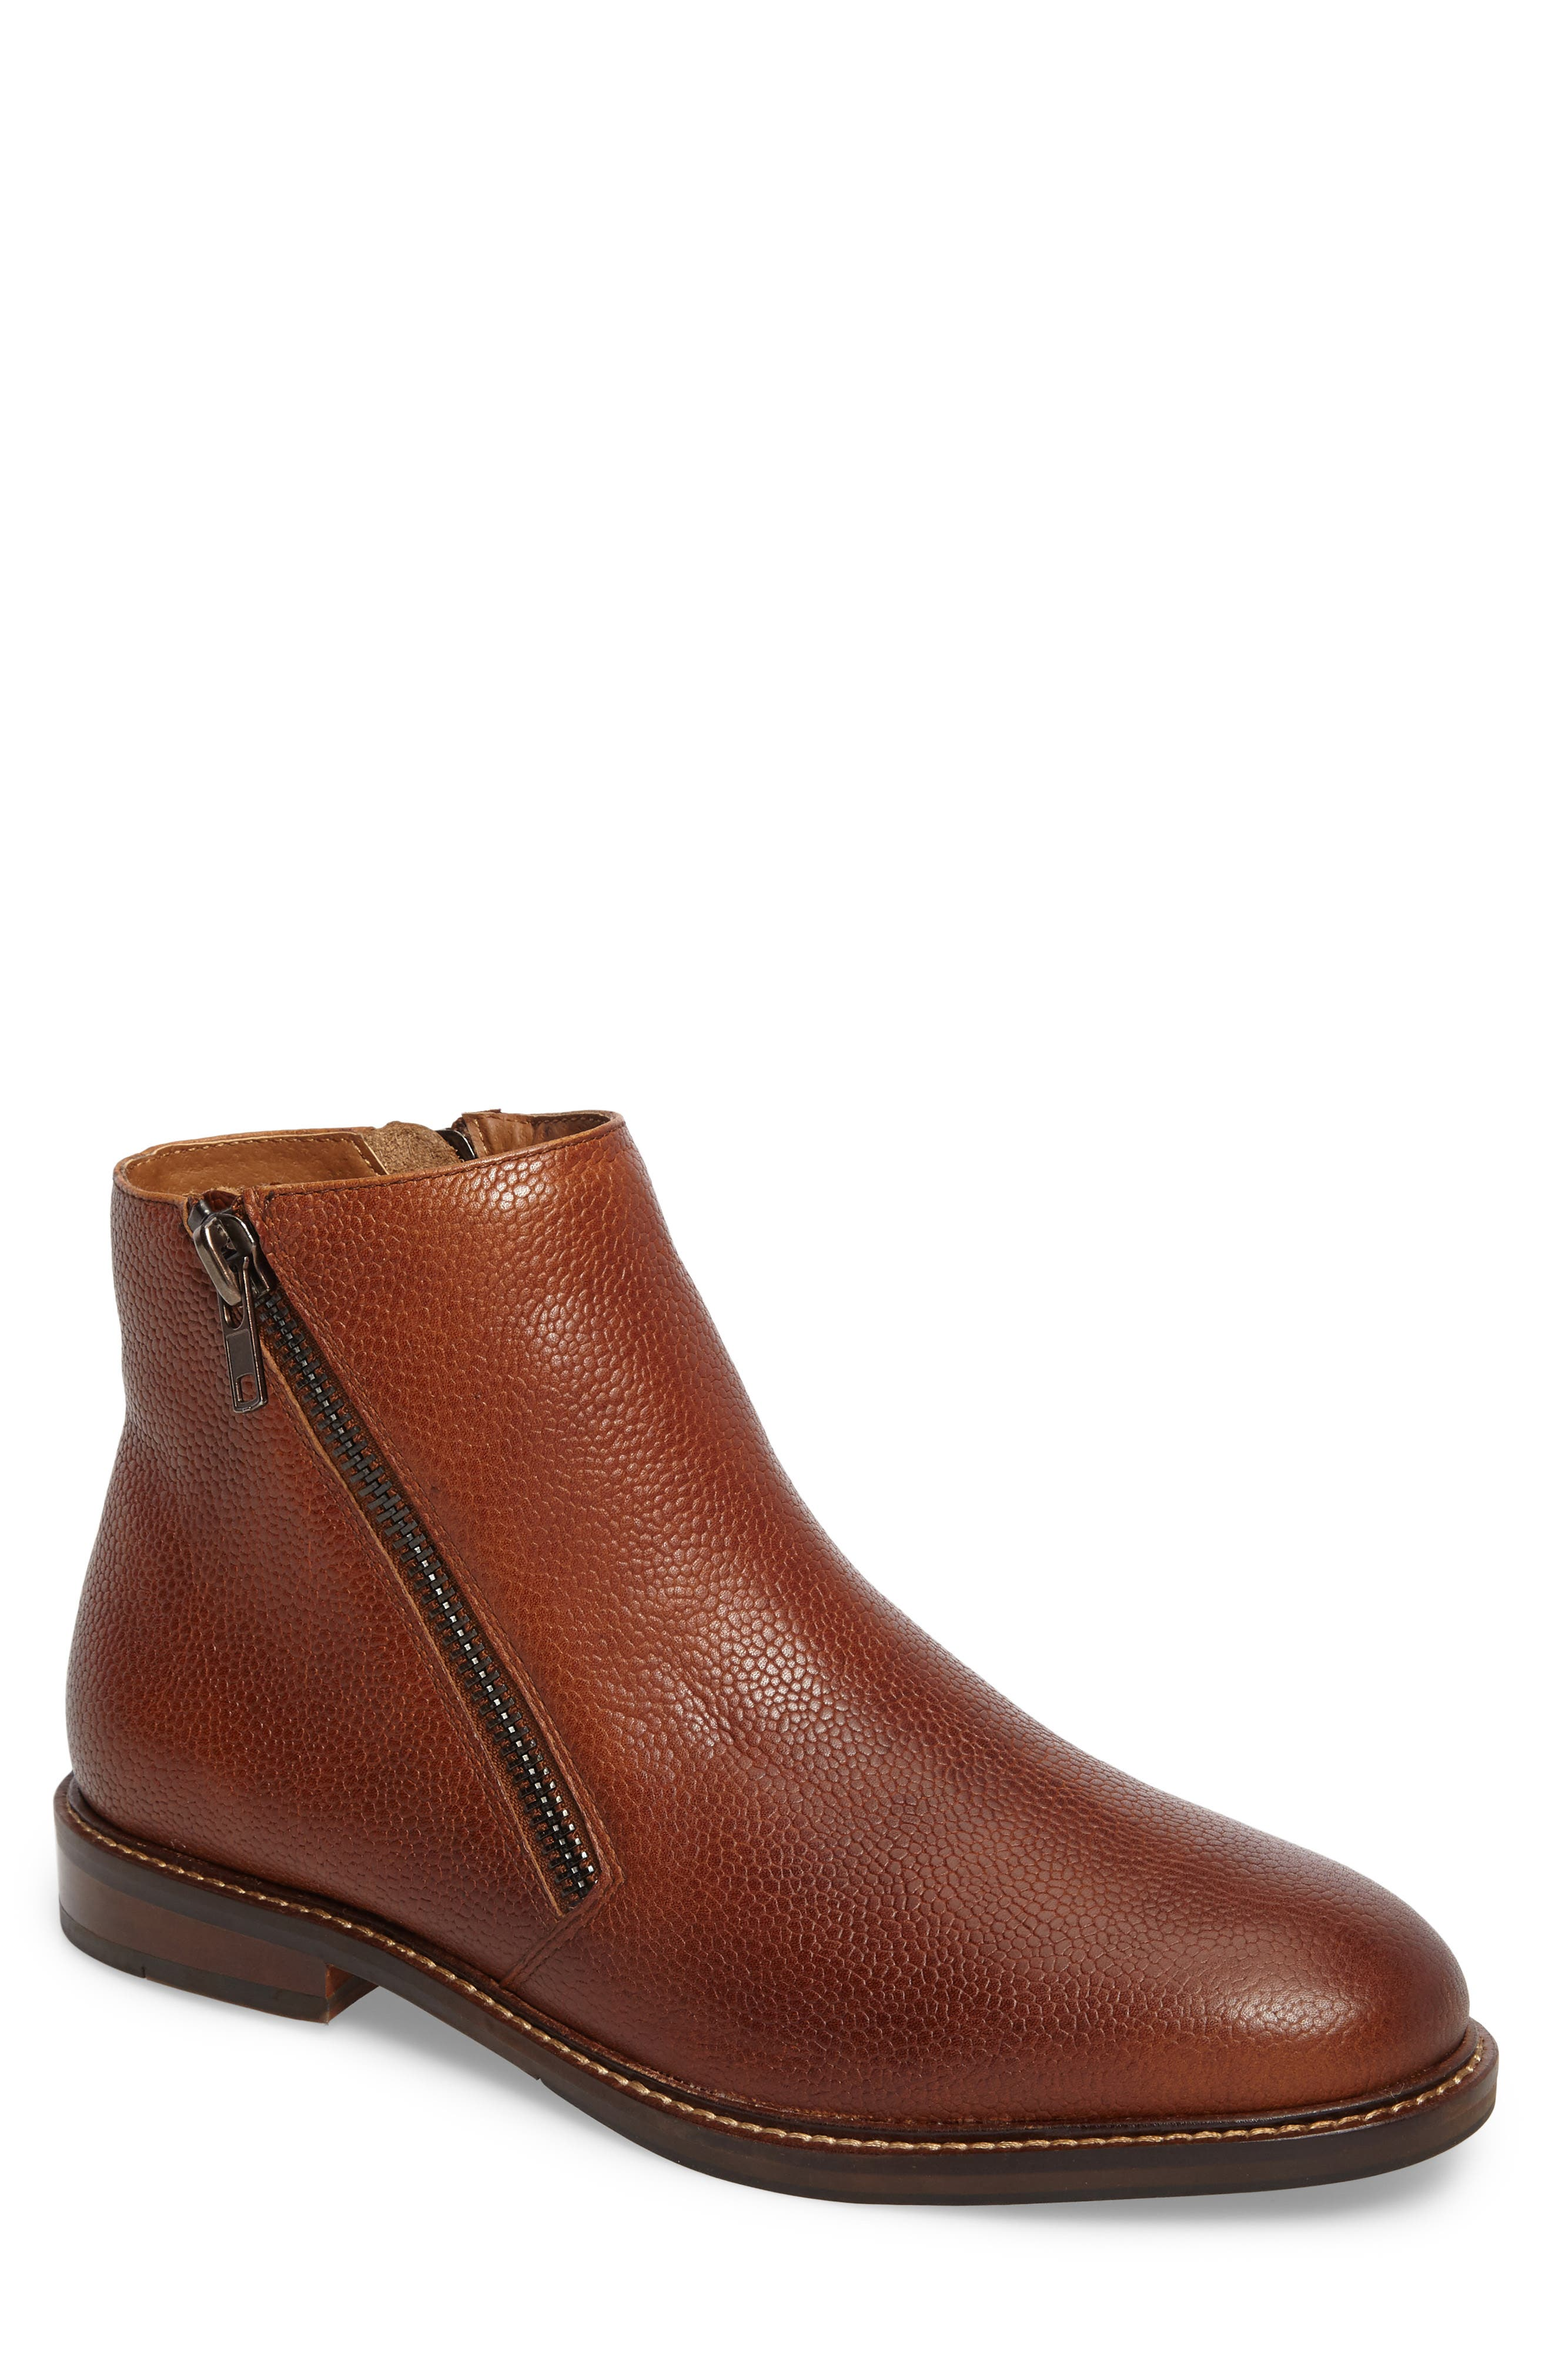 Kenneth Cole Reaction Zip Boot,                             Main thumbnail 1, color,                             201